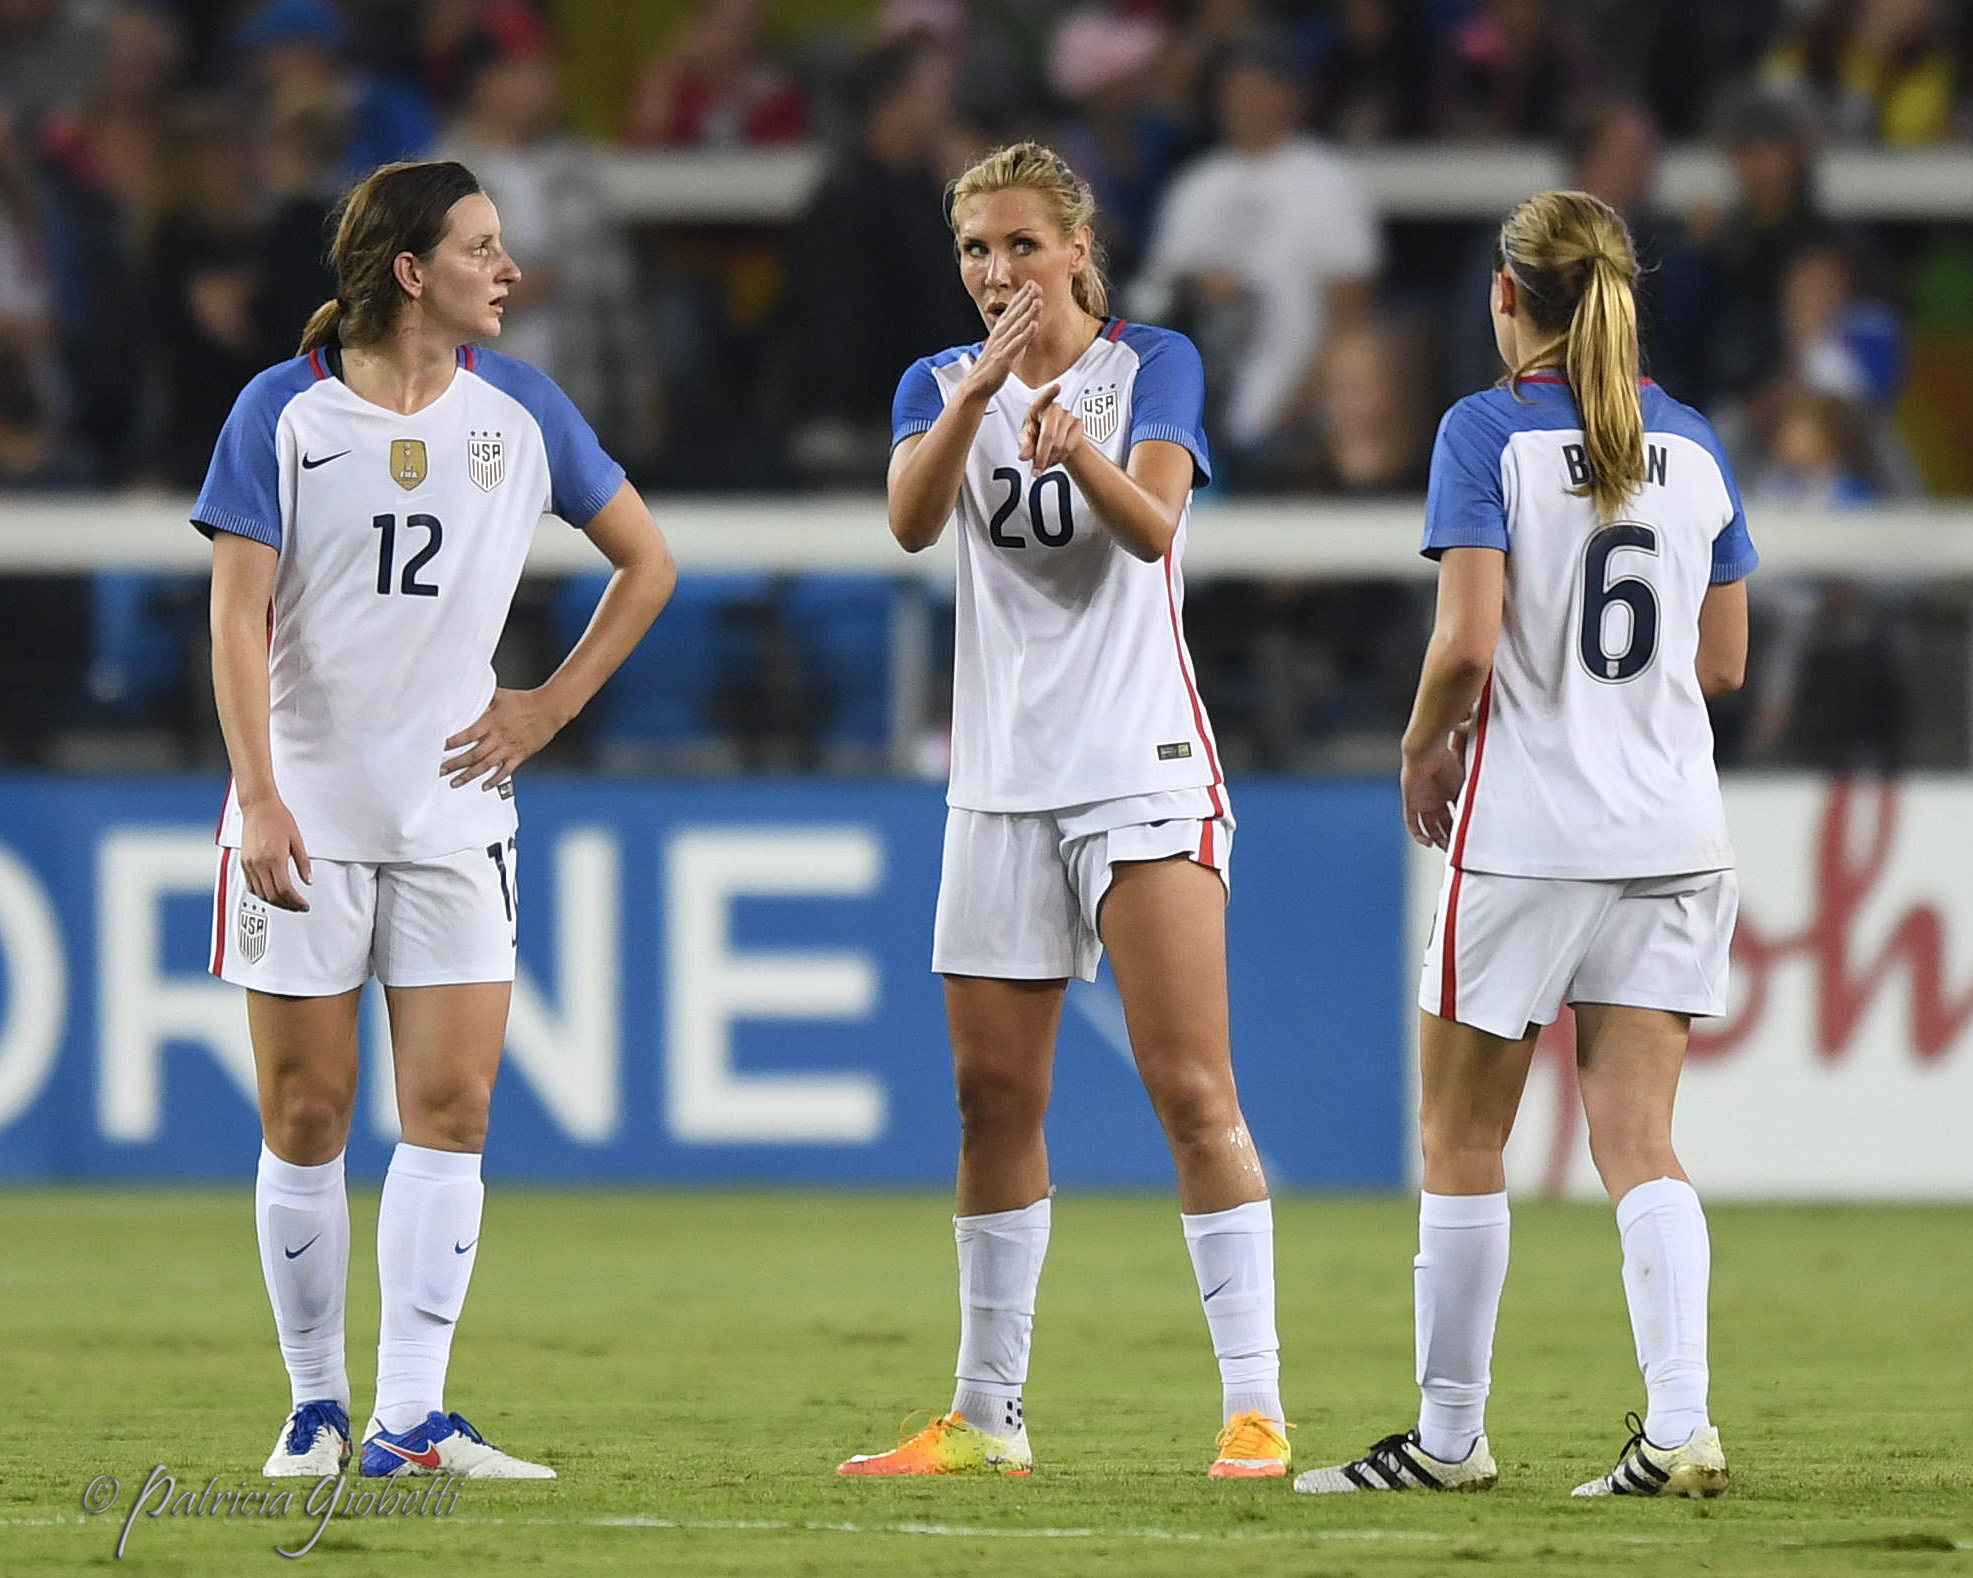 The USWNT's defense, whether a back four or back three and no matter the personnel, has been less stellar in 2016 than it was in 2015. The good news? Andi Sullivan has been stellar in midfield. (Photo Copyright Patricia Giobetti for The Equalizer)